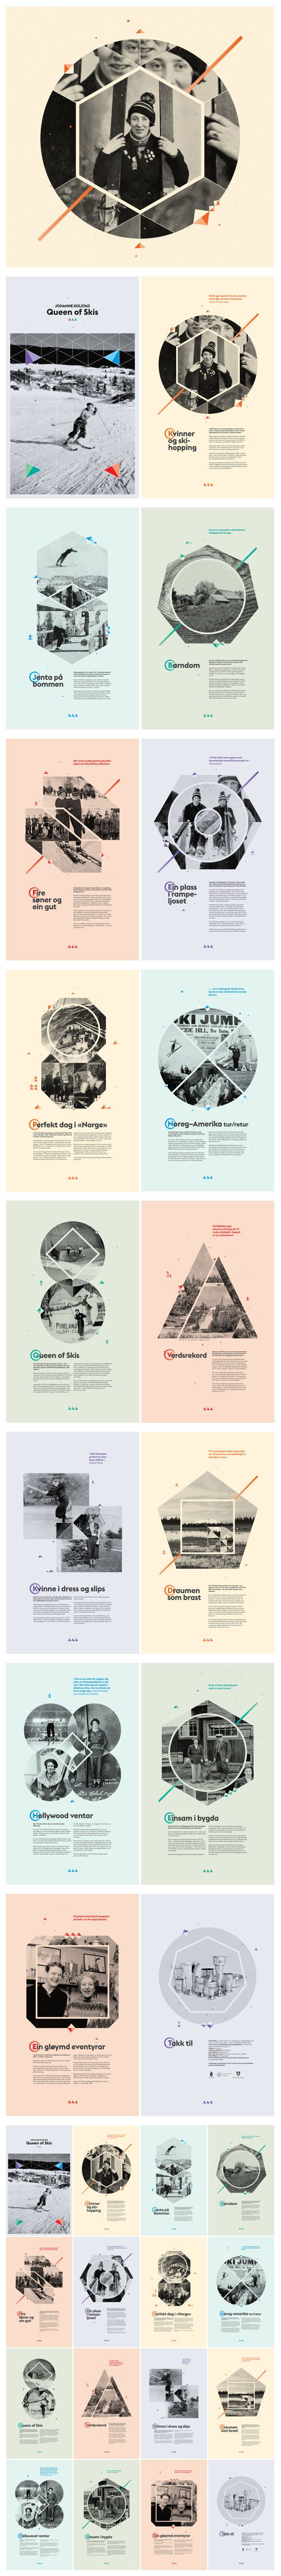 102 best Design images on Pinterest | Page layout, Resume design ...